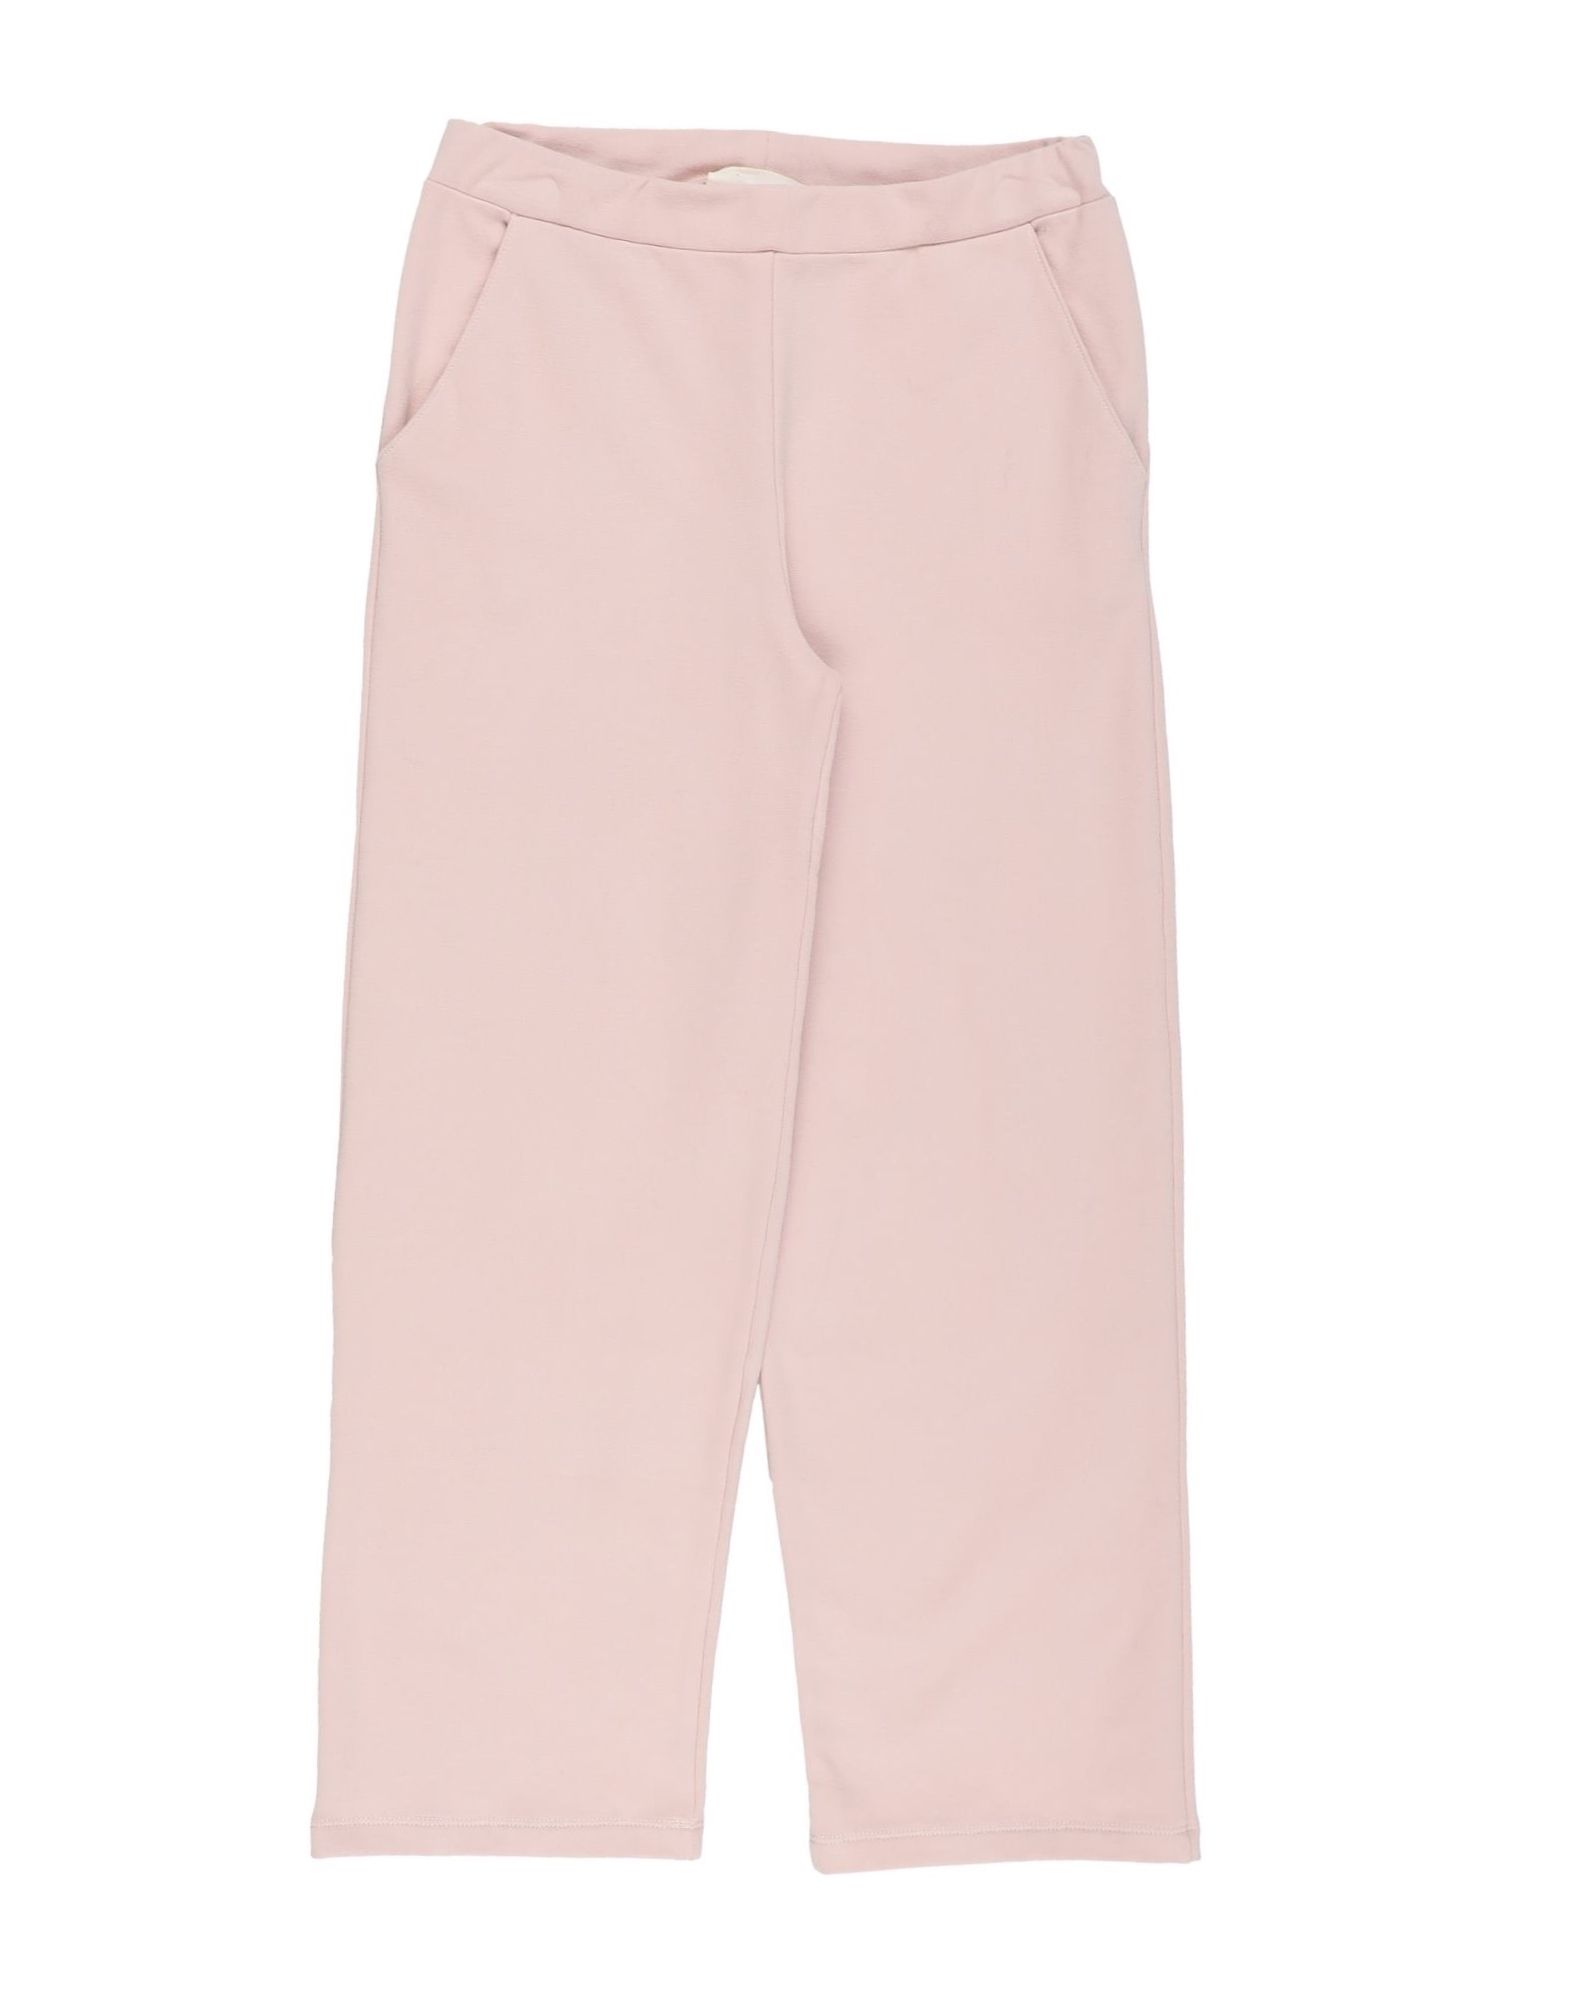 Douuod Kids' Casual Pants In Pink